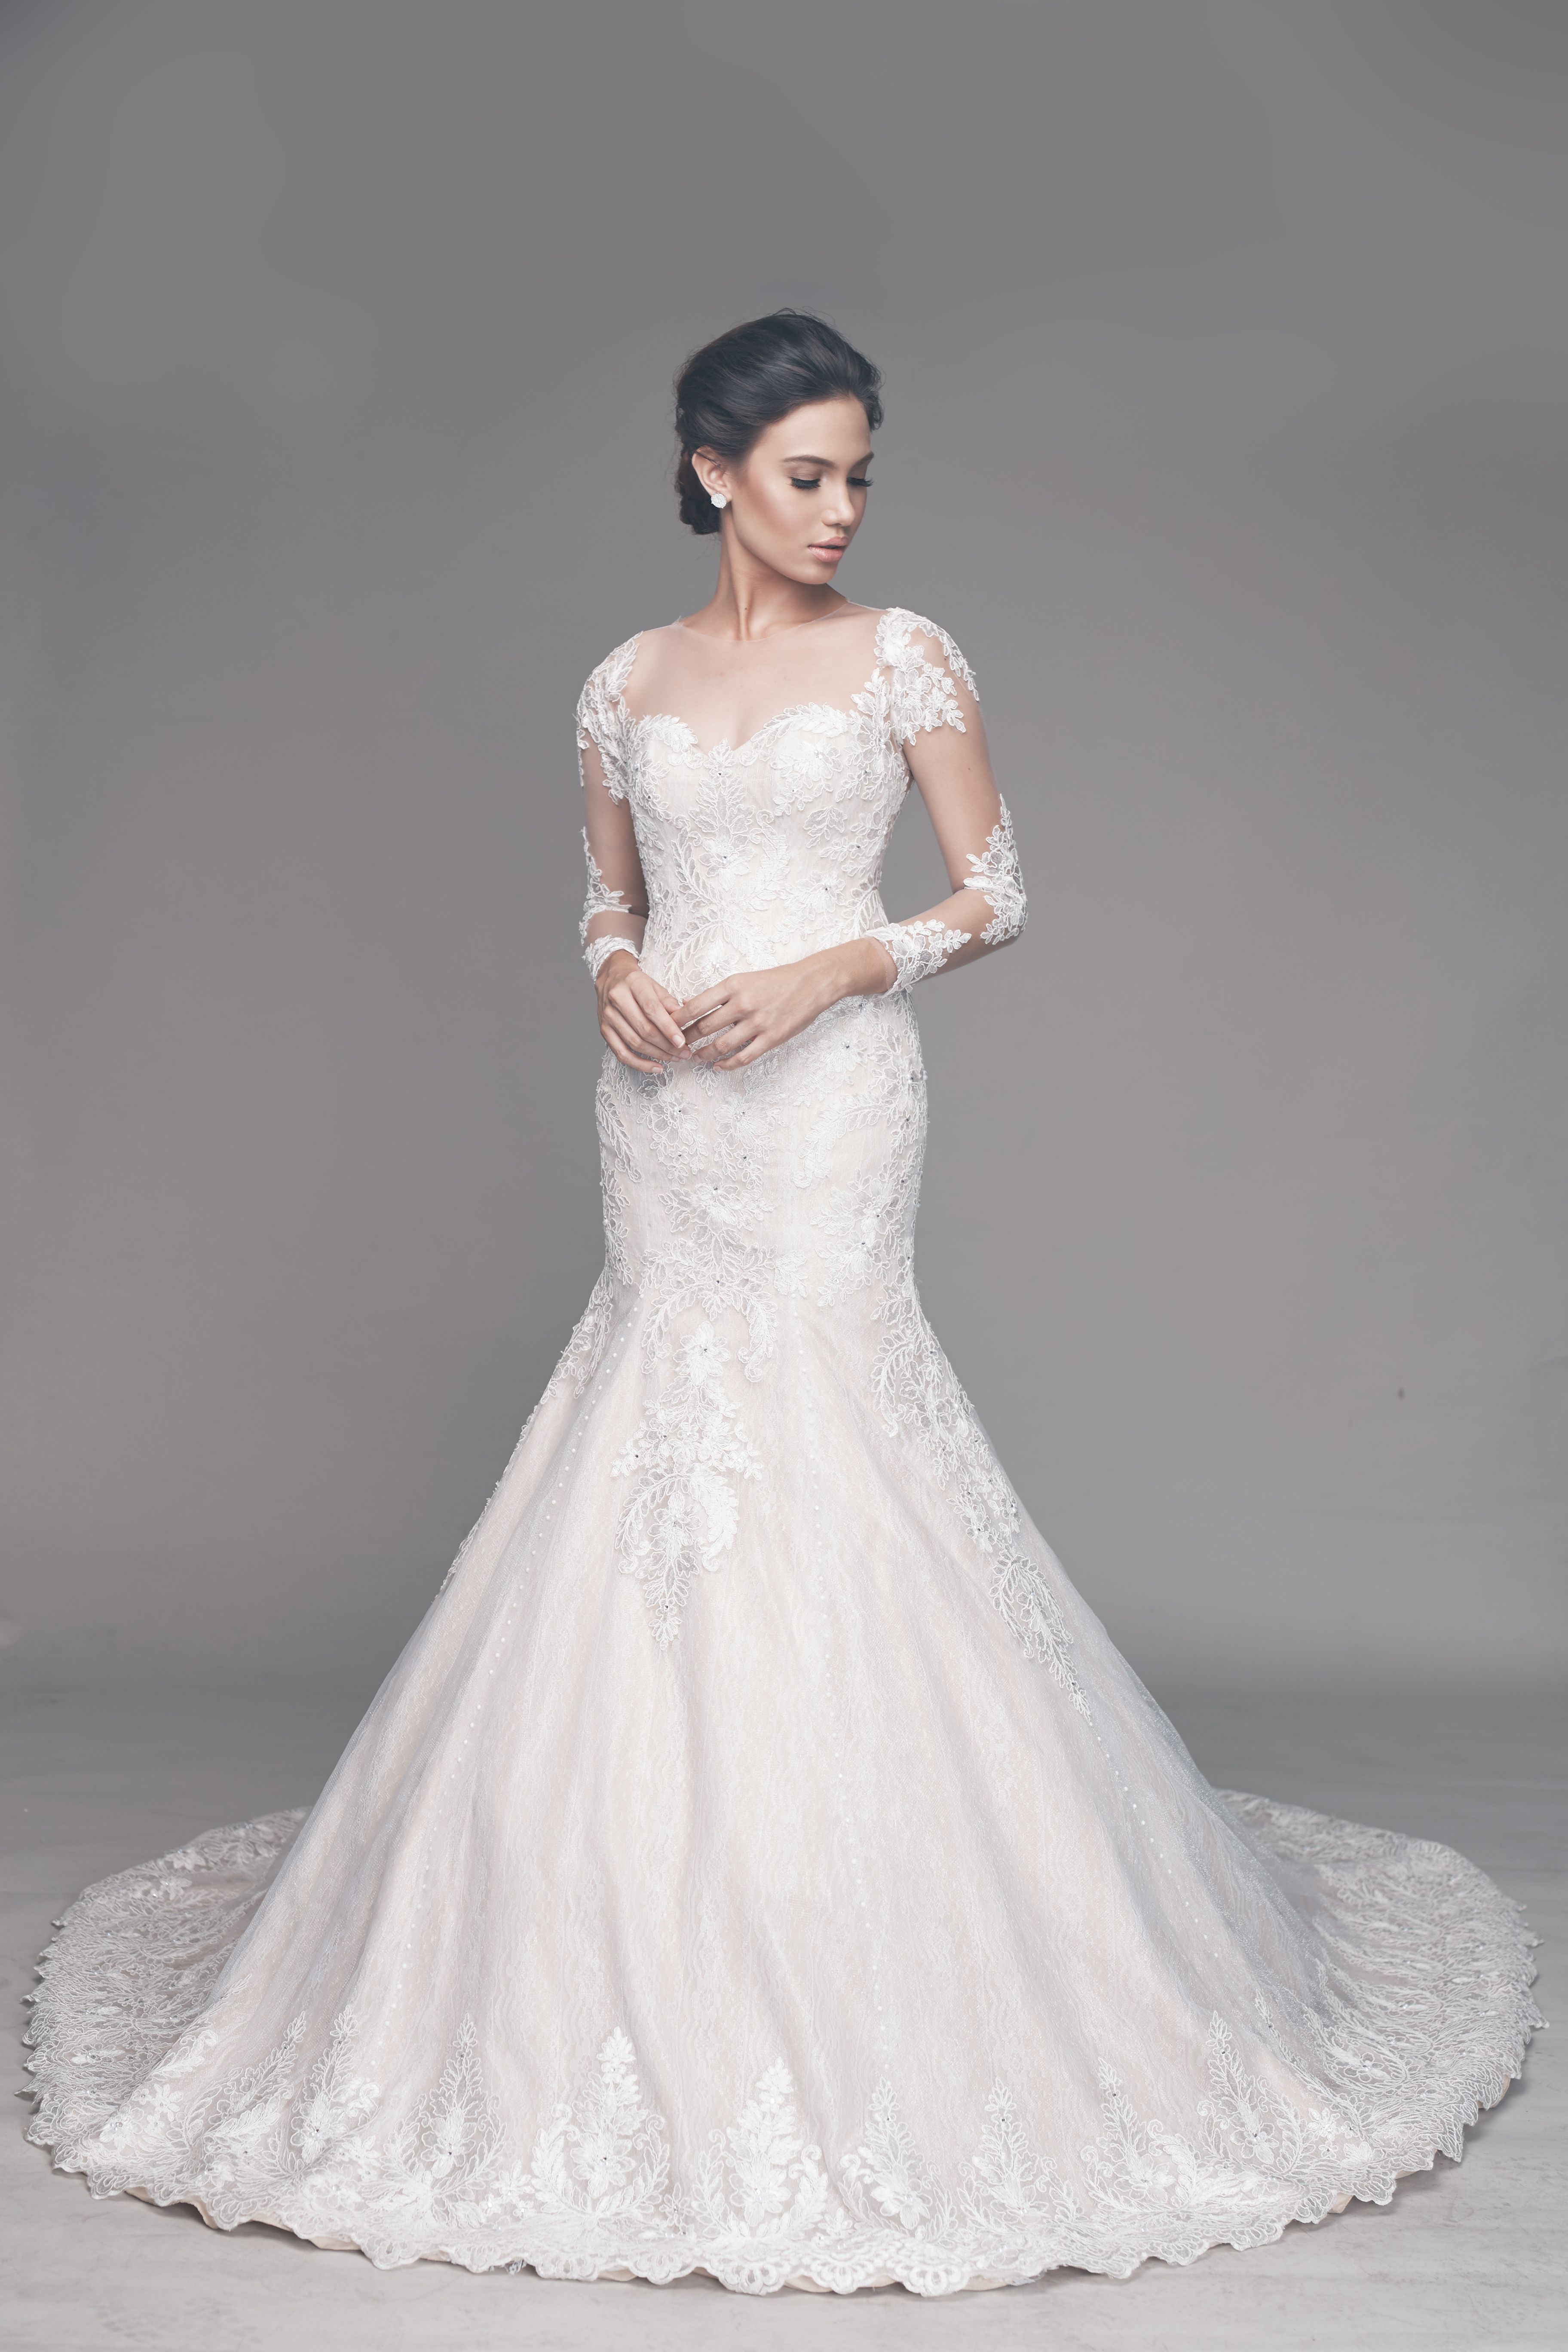 Classy Wedding Gown Lace Wedding Gown Bridal Gown Mermaid Cut Wedding Gown Serpentina